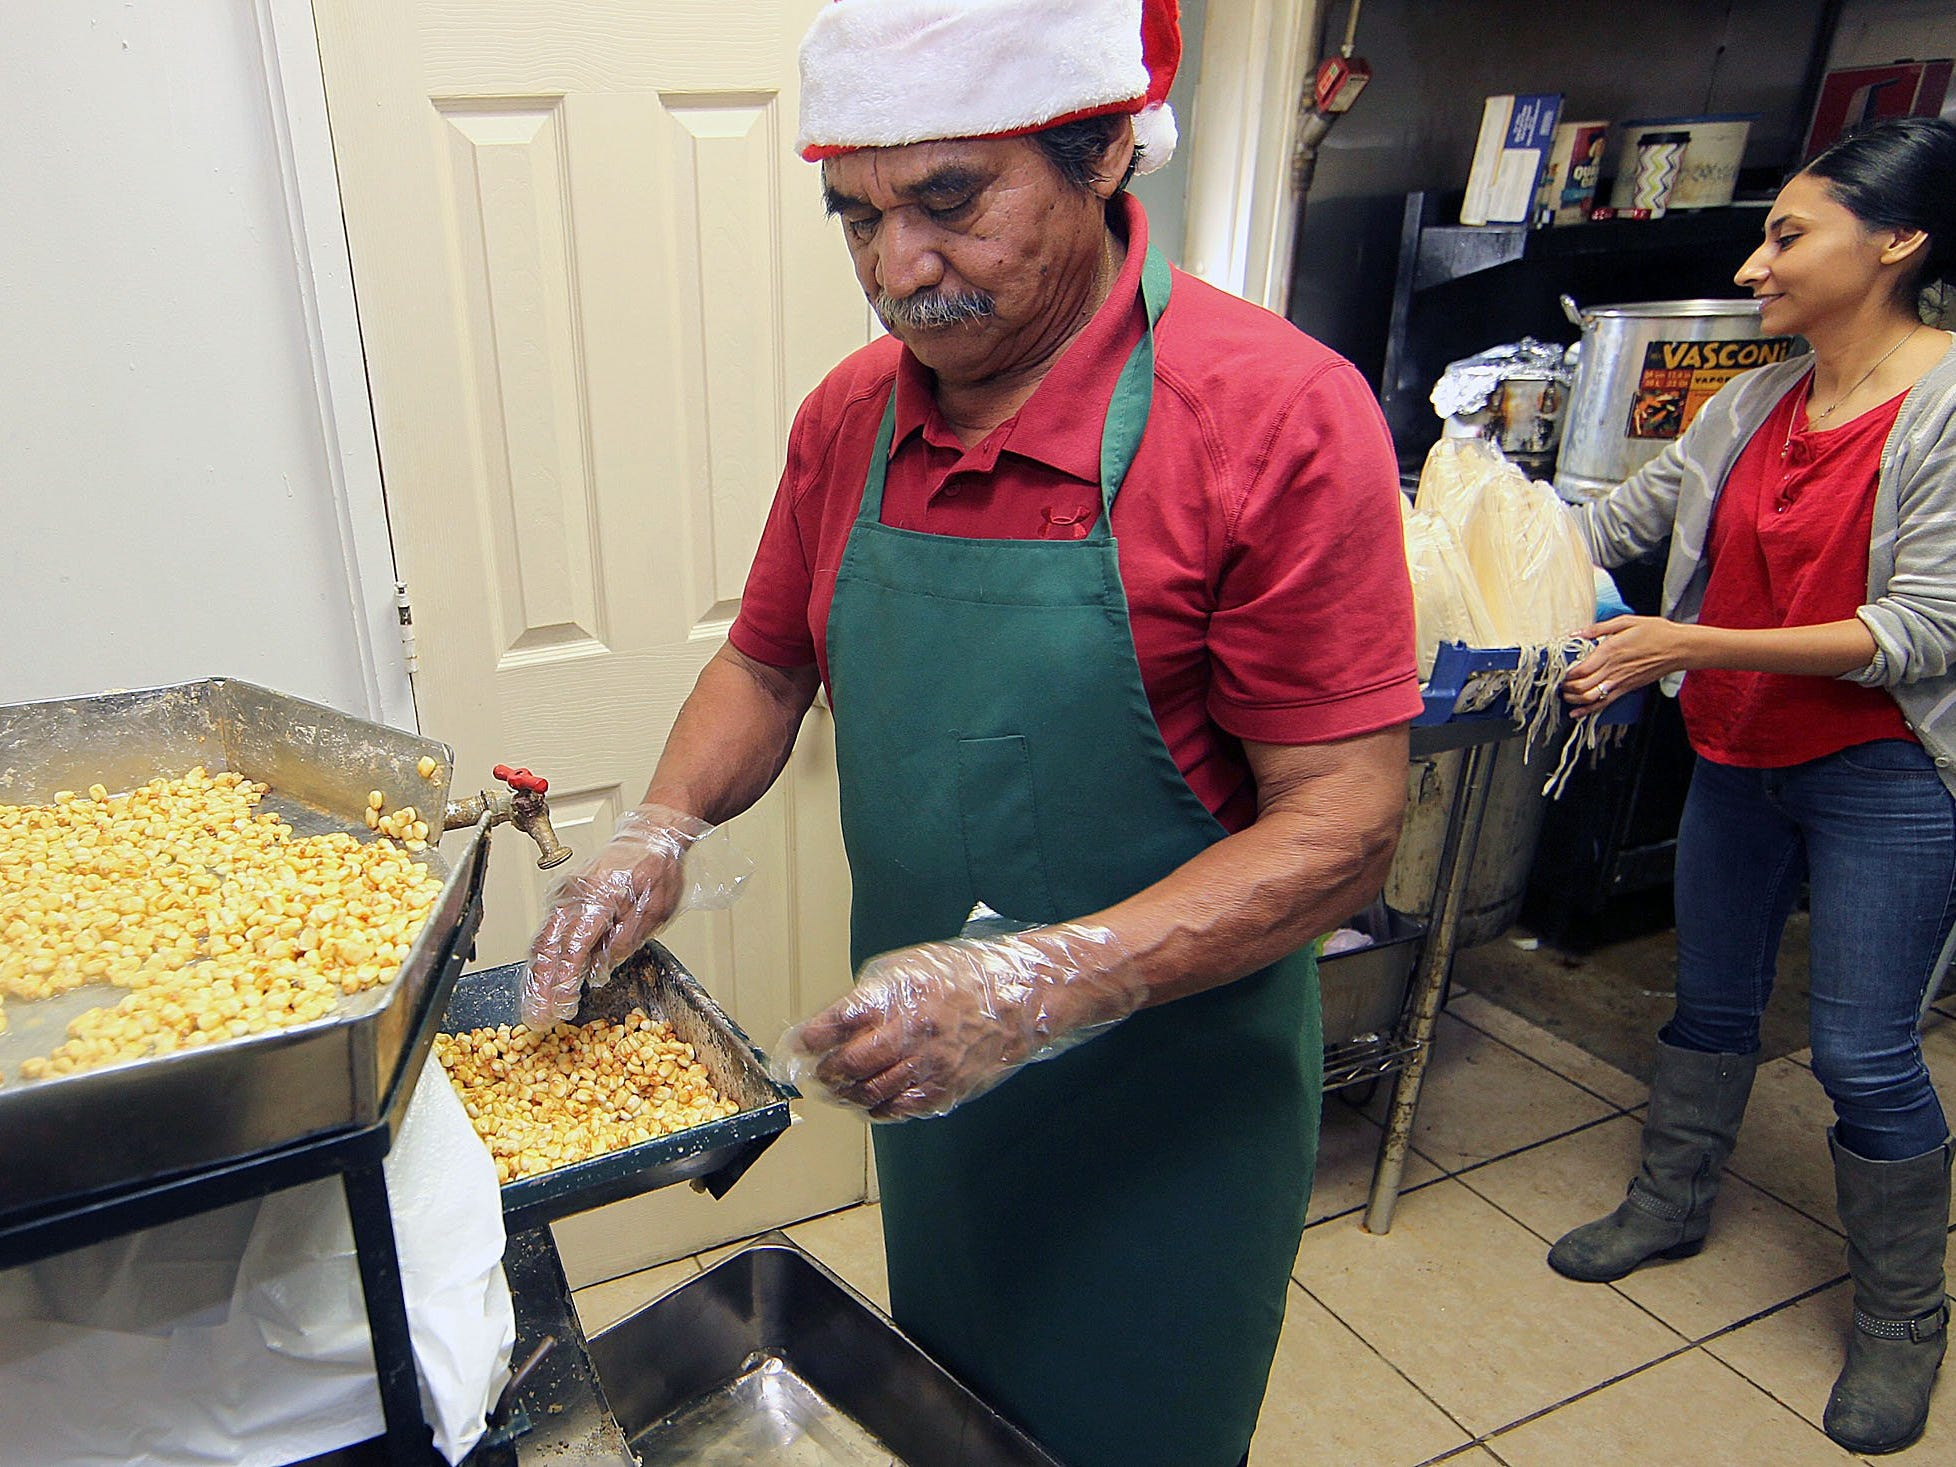 Jose Huerta who runs Huerta's Tamales with his wife, Maria, grinds corn in the back room of their shop on S. Staples Street as they try to keep up with the holiday order. The shop will close on Dec. 31, 2018.